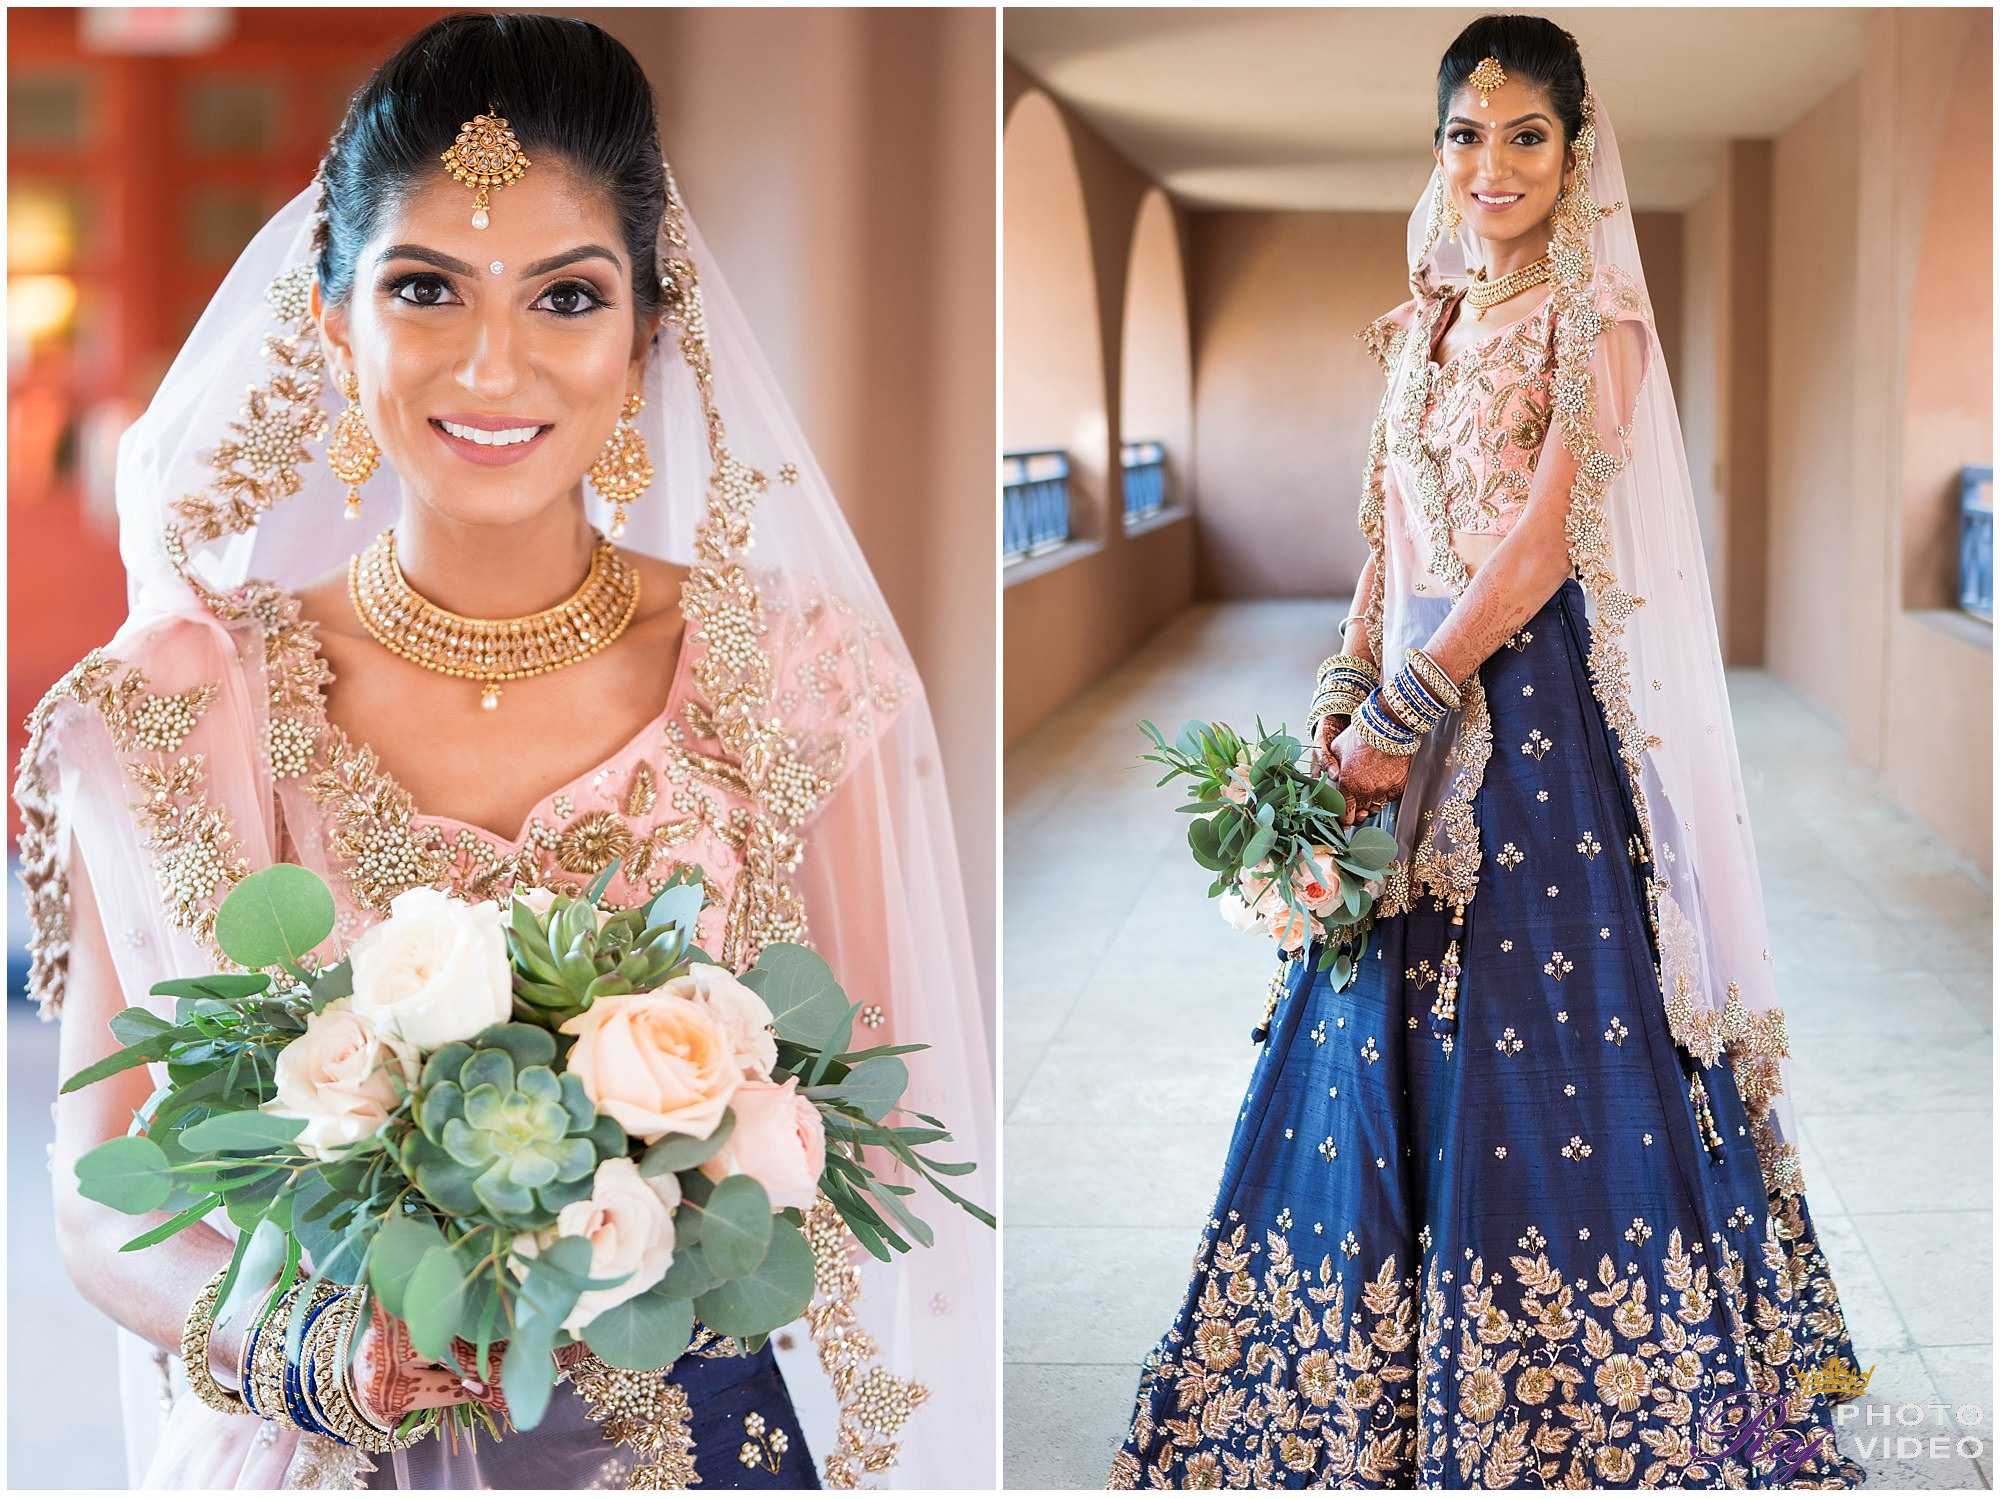 Scottsdale_Marriott_at_McDowell_Mountains_Arizona_Indian_Wedding_Sapna_Shyam-32.jpg